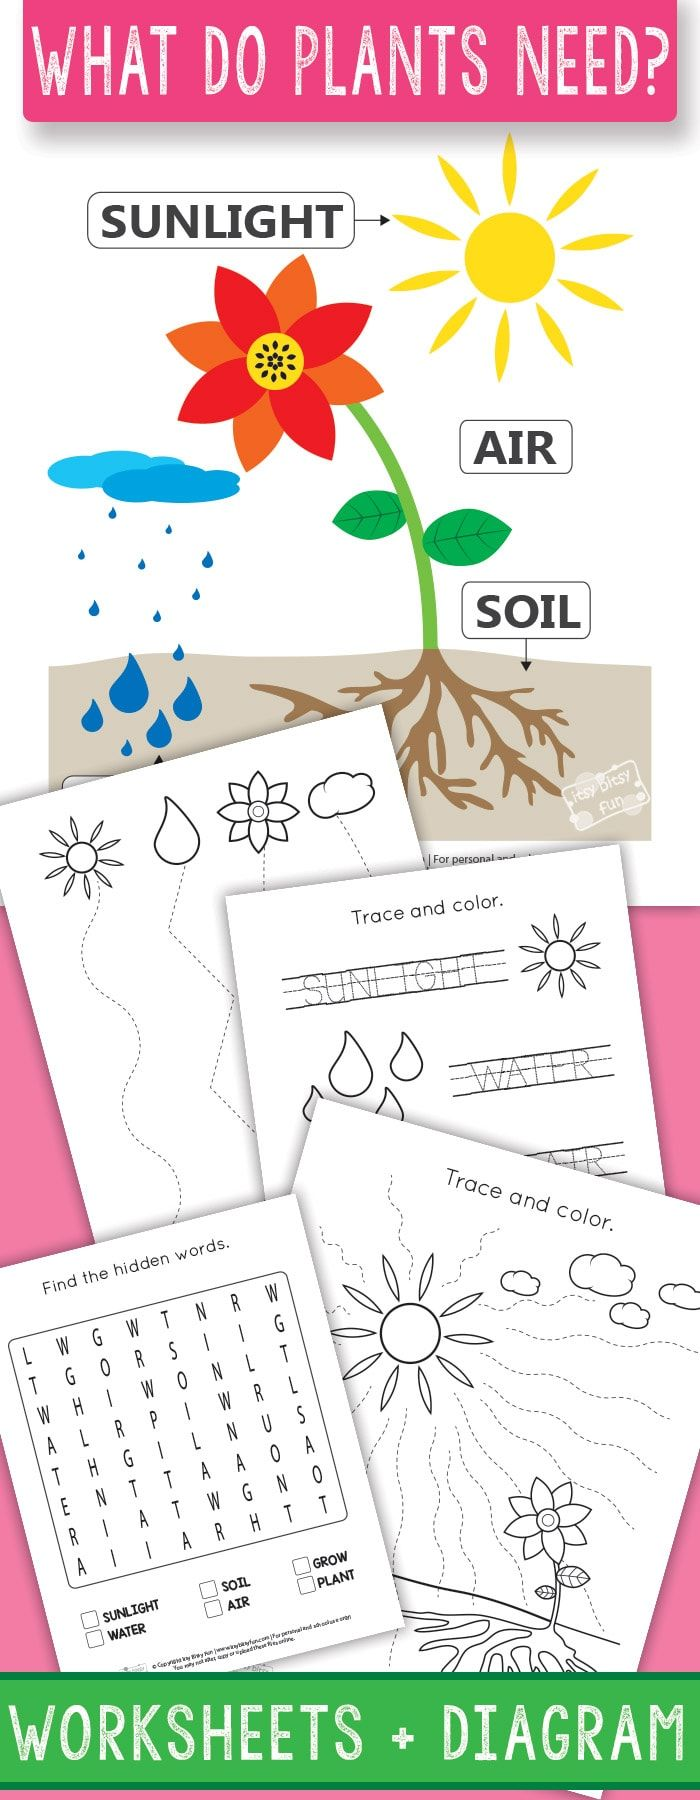 hight resolution of What do Plants Need to Grow Worksheets - itsybitsyfun.com   Plants  kindergarten